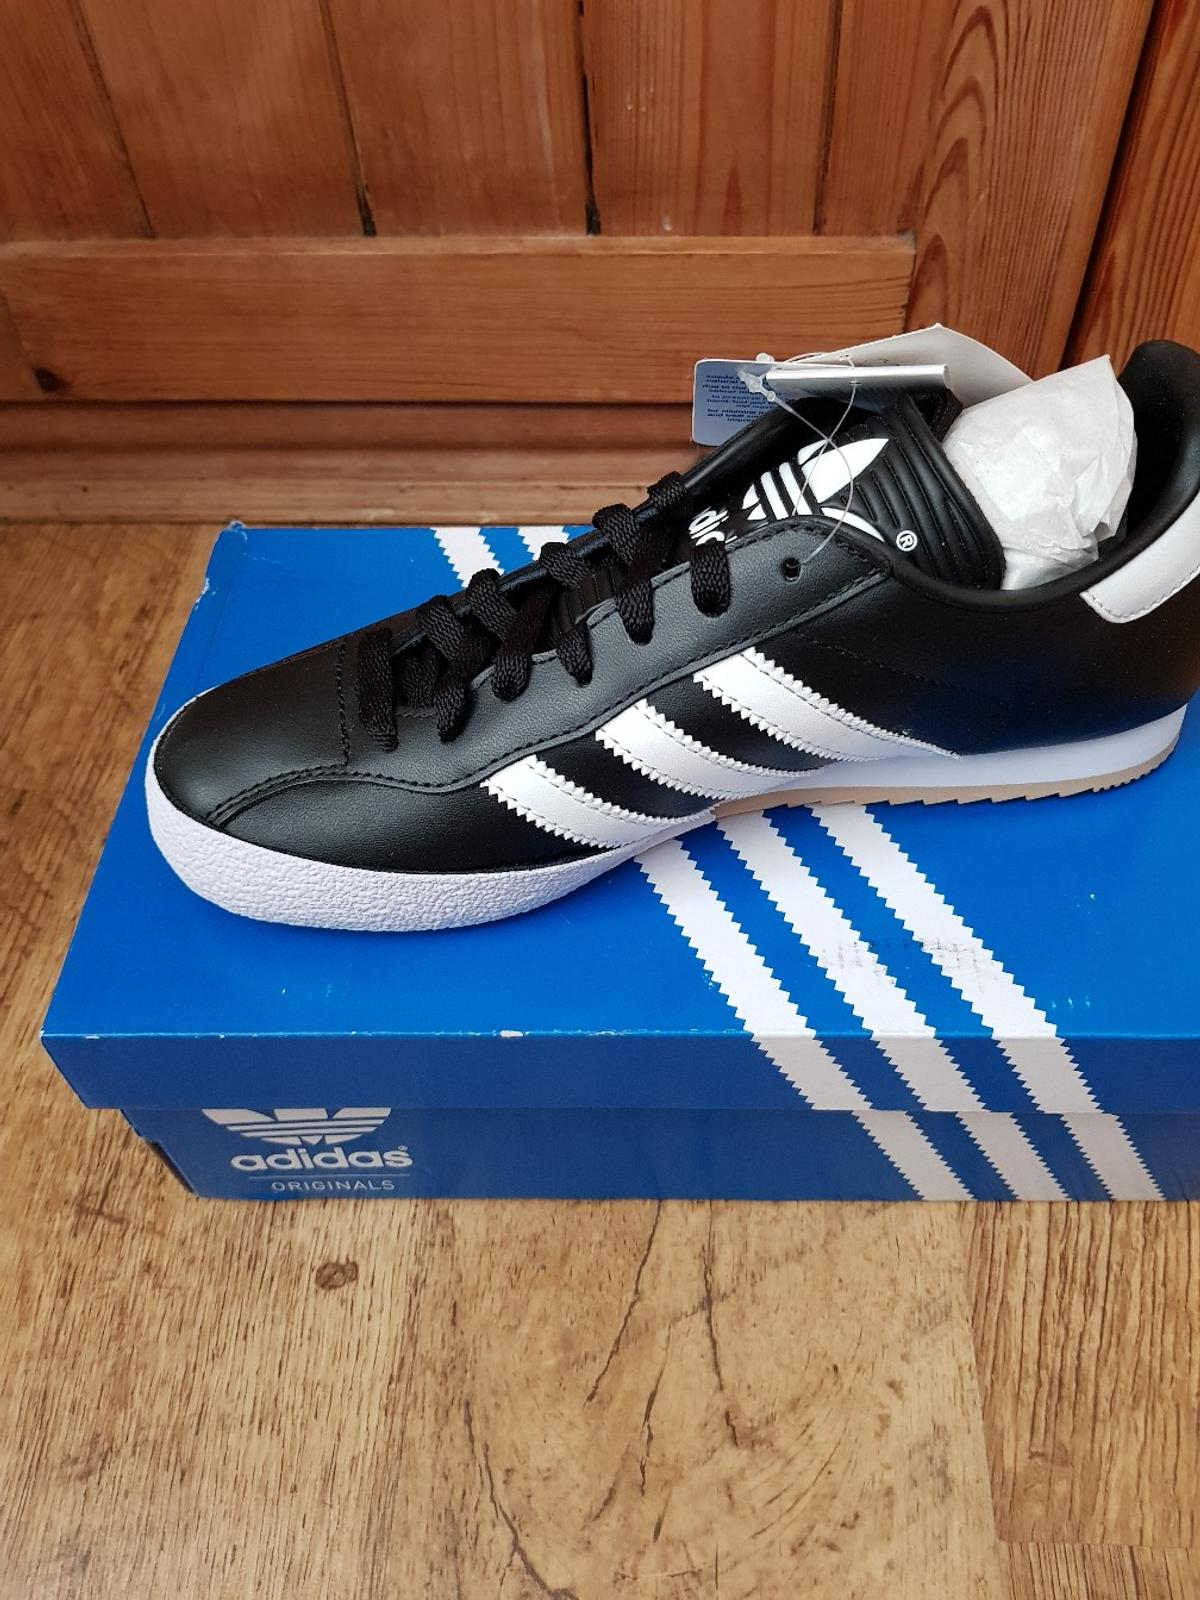 Adidas samba super originals men's trainers in B28